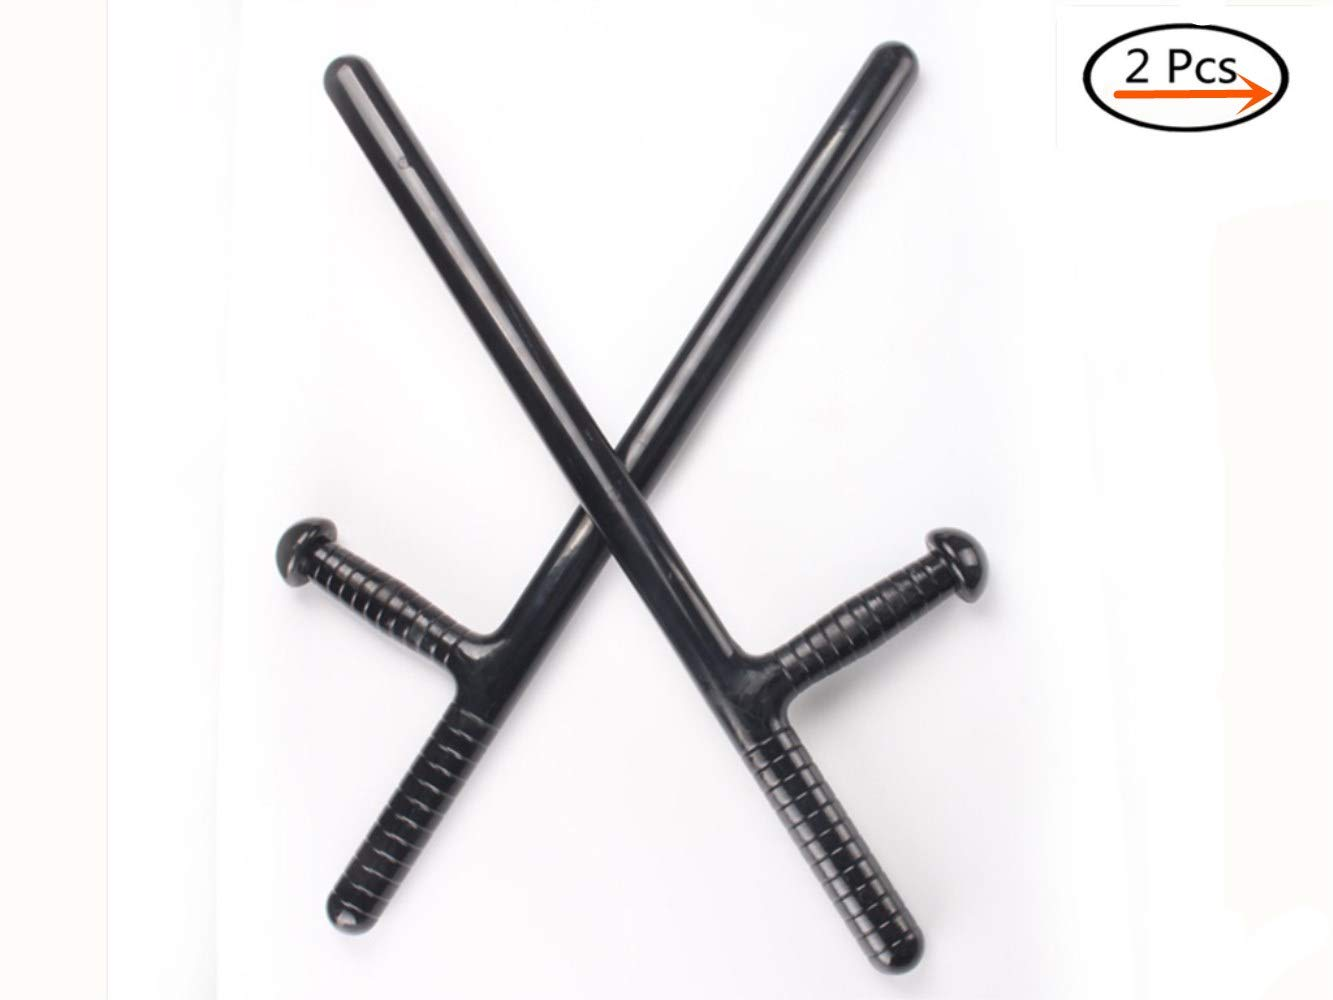 Humourous 1 Pair Riot Stick T-Type TshapedT-Stick Turn Martial Arts Security Equipment Security Supplies Self-Defense Weapons